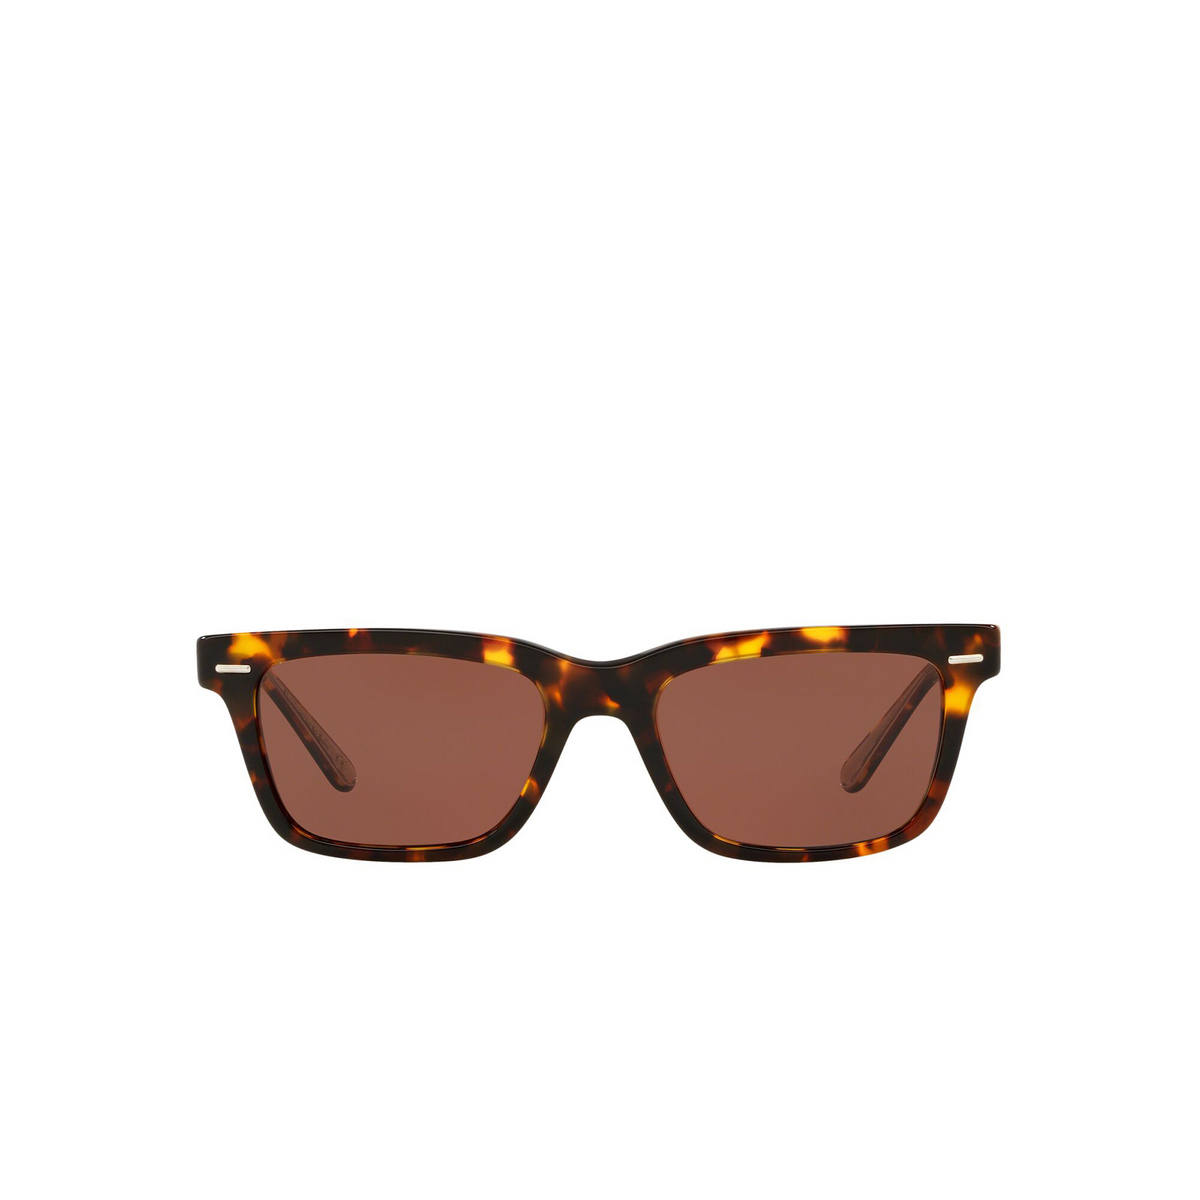 Oliver Peoples® Square Sunglasses: Ba Cc OV5388SU color Whiskey Tortoise 1663C5 - front view.